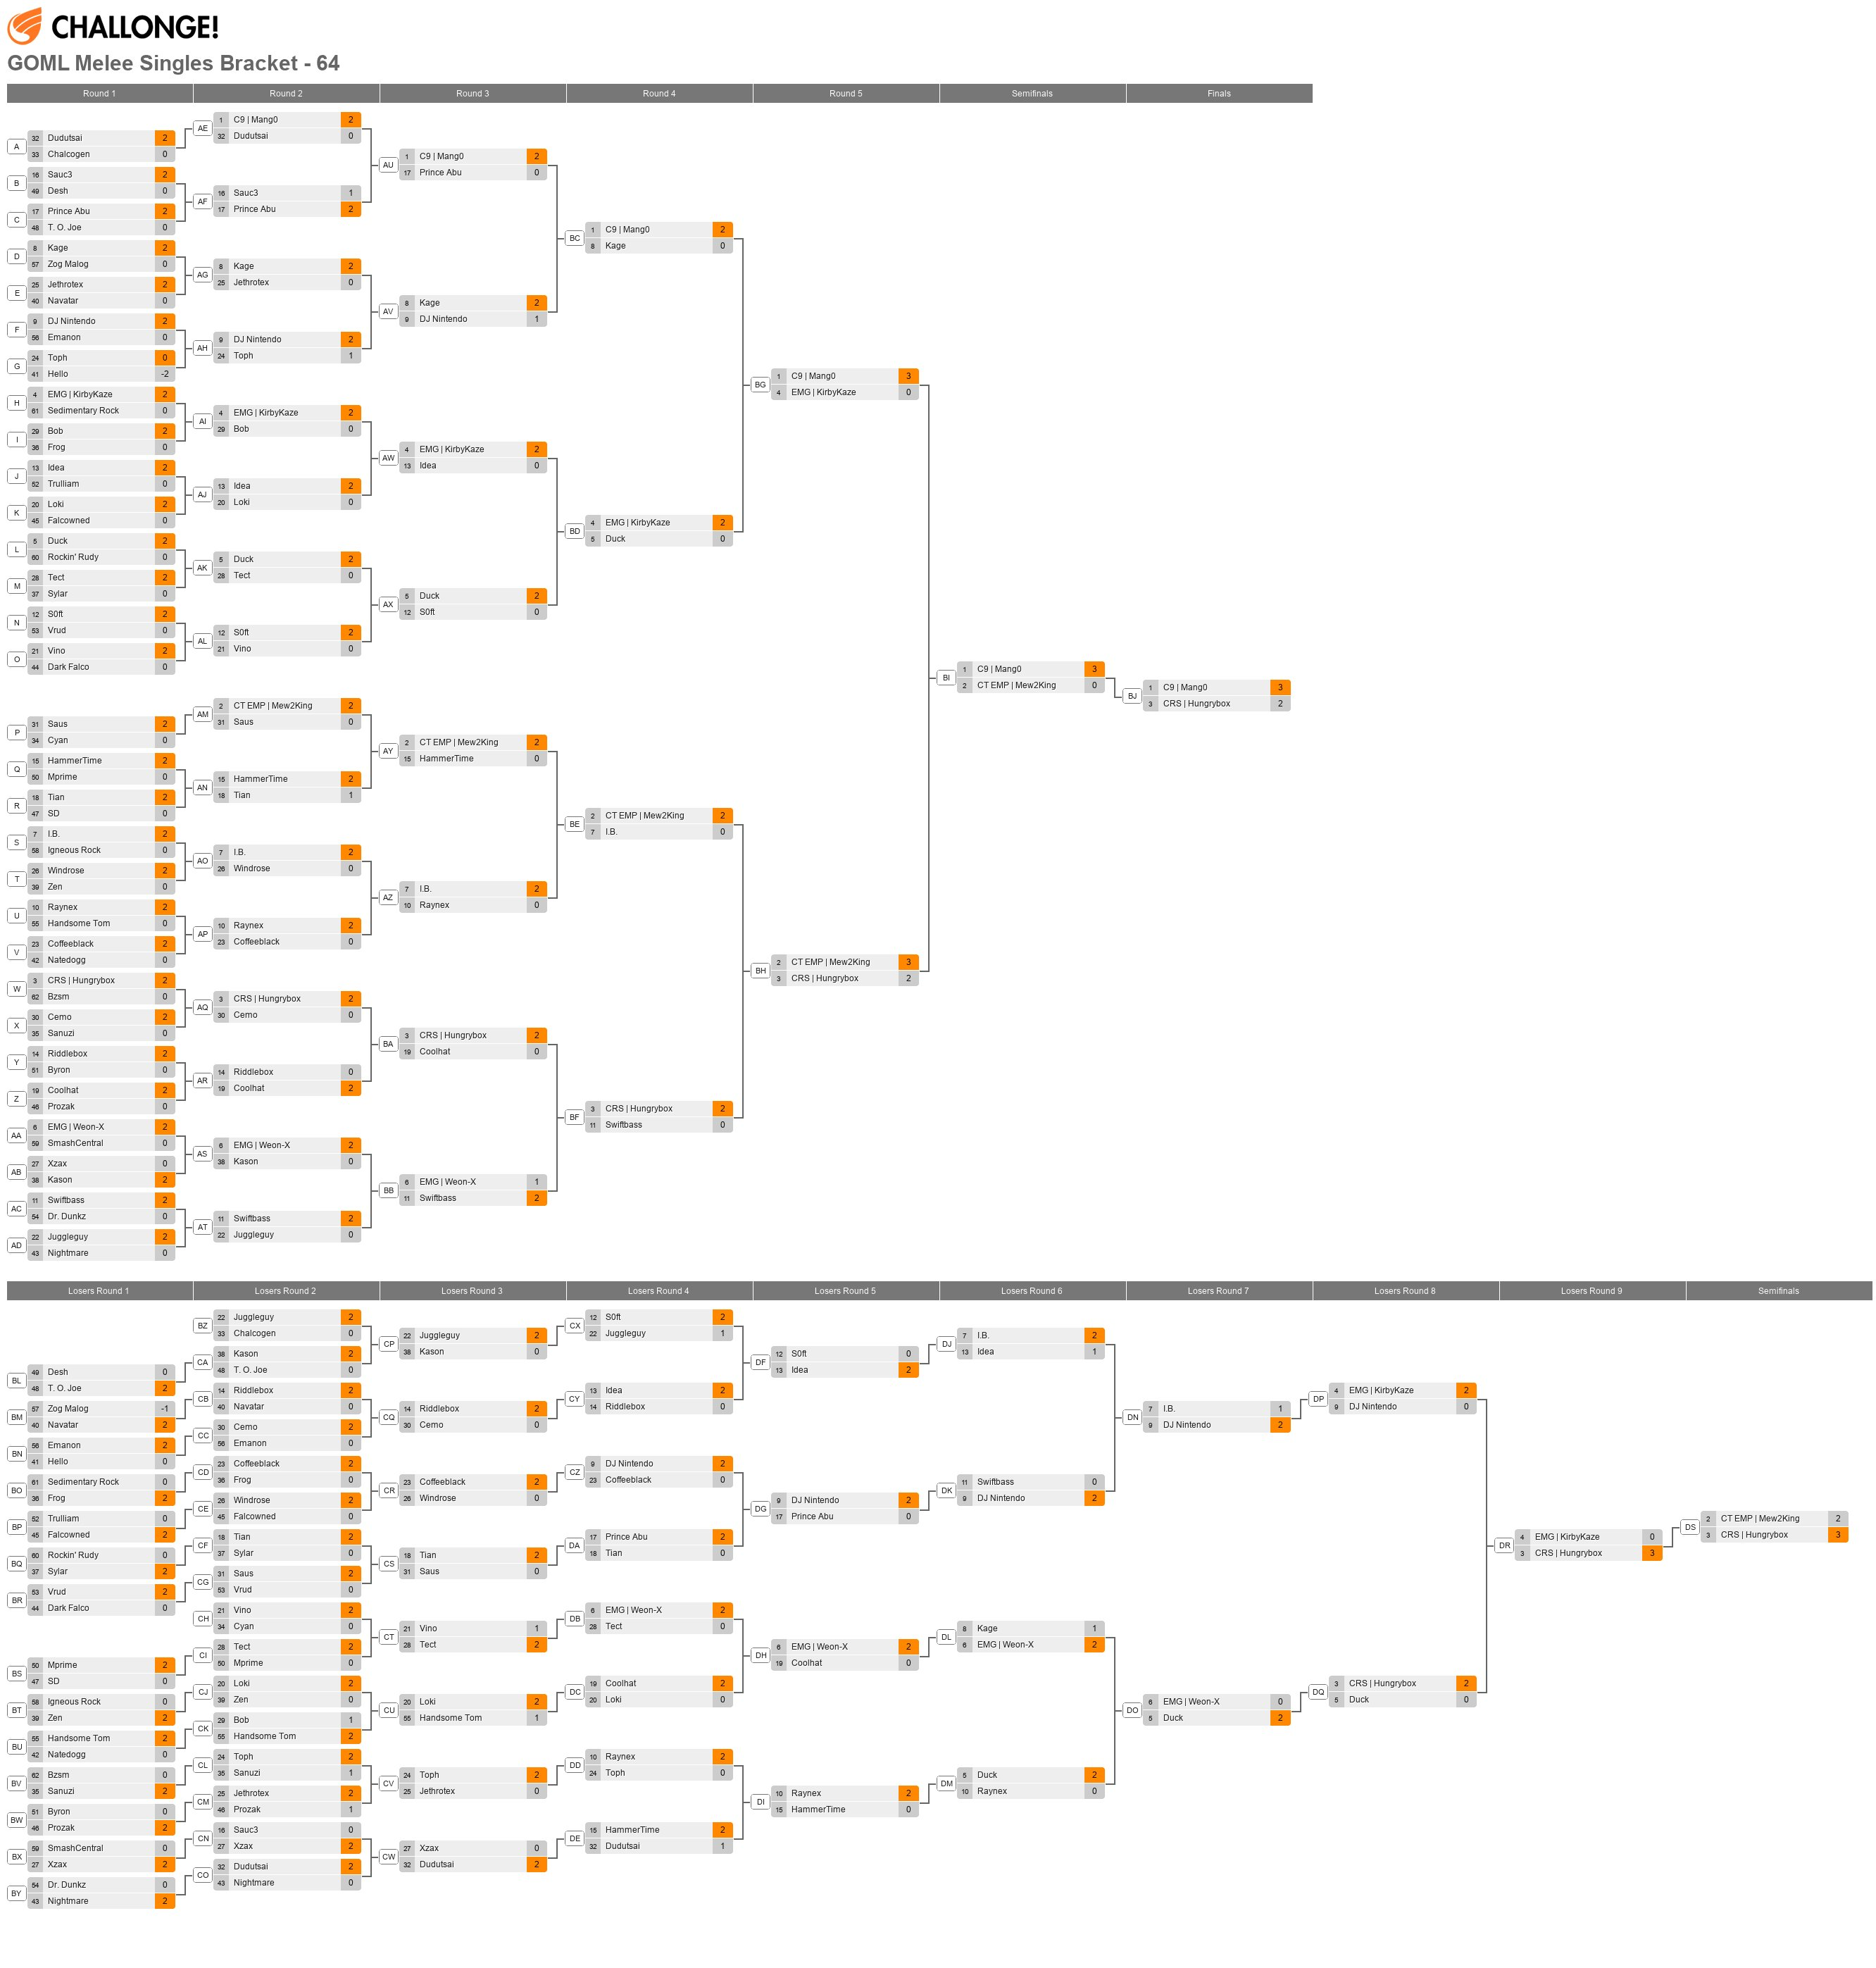 Get On My Level 2014 - Melee Singles Bracket